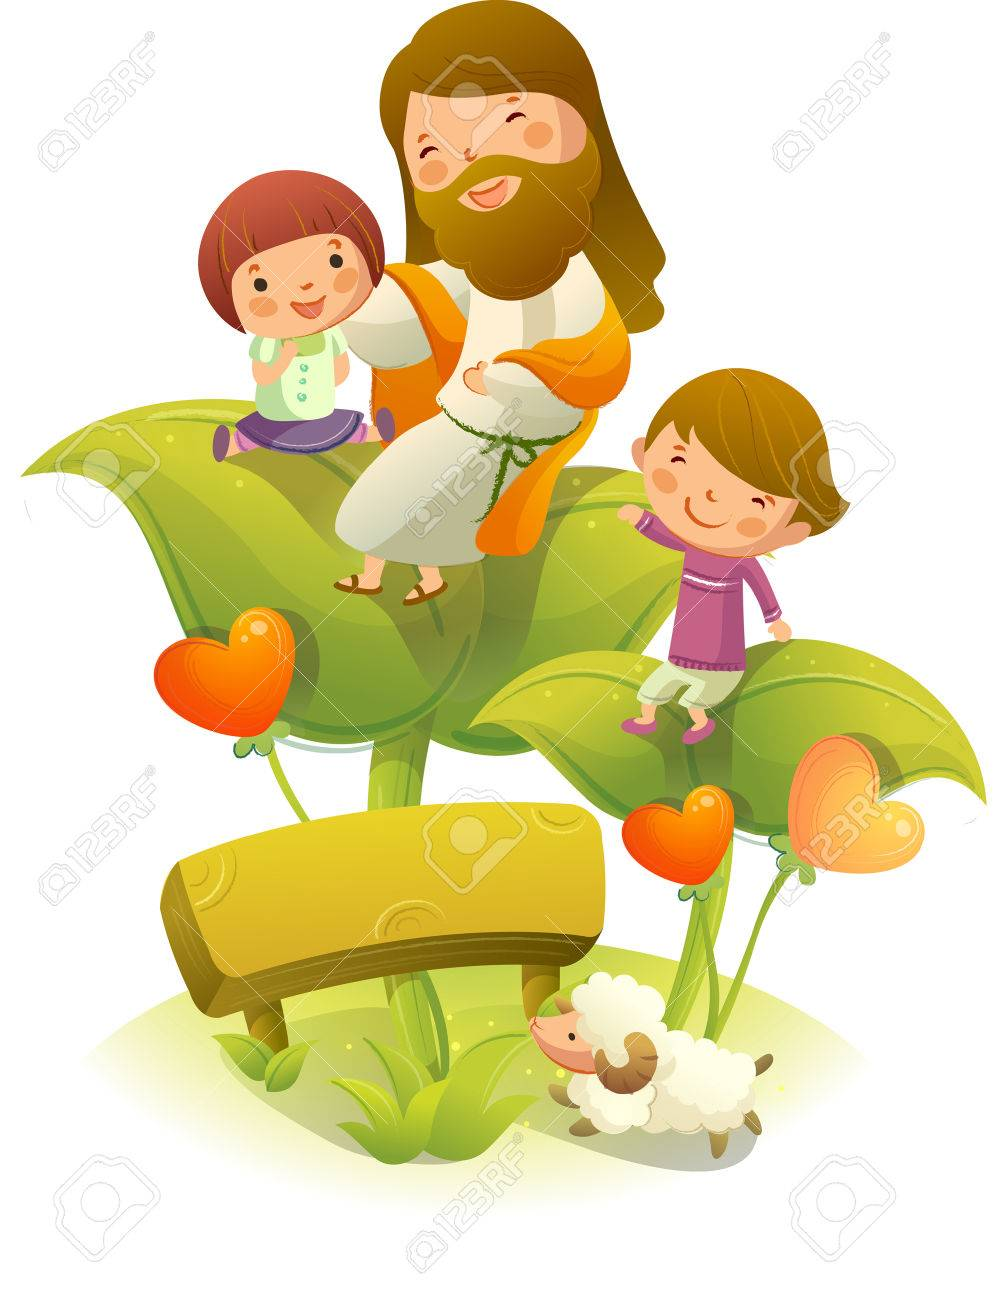 Jesus Christ Sitting On A Plant With Two Children Royalty Free ...